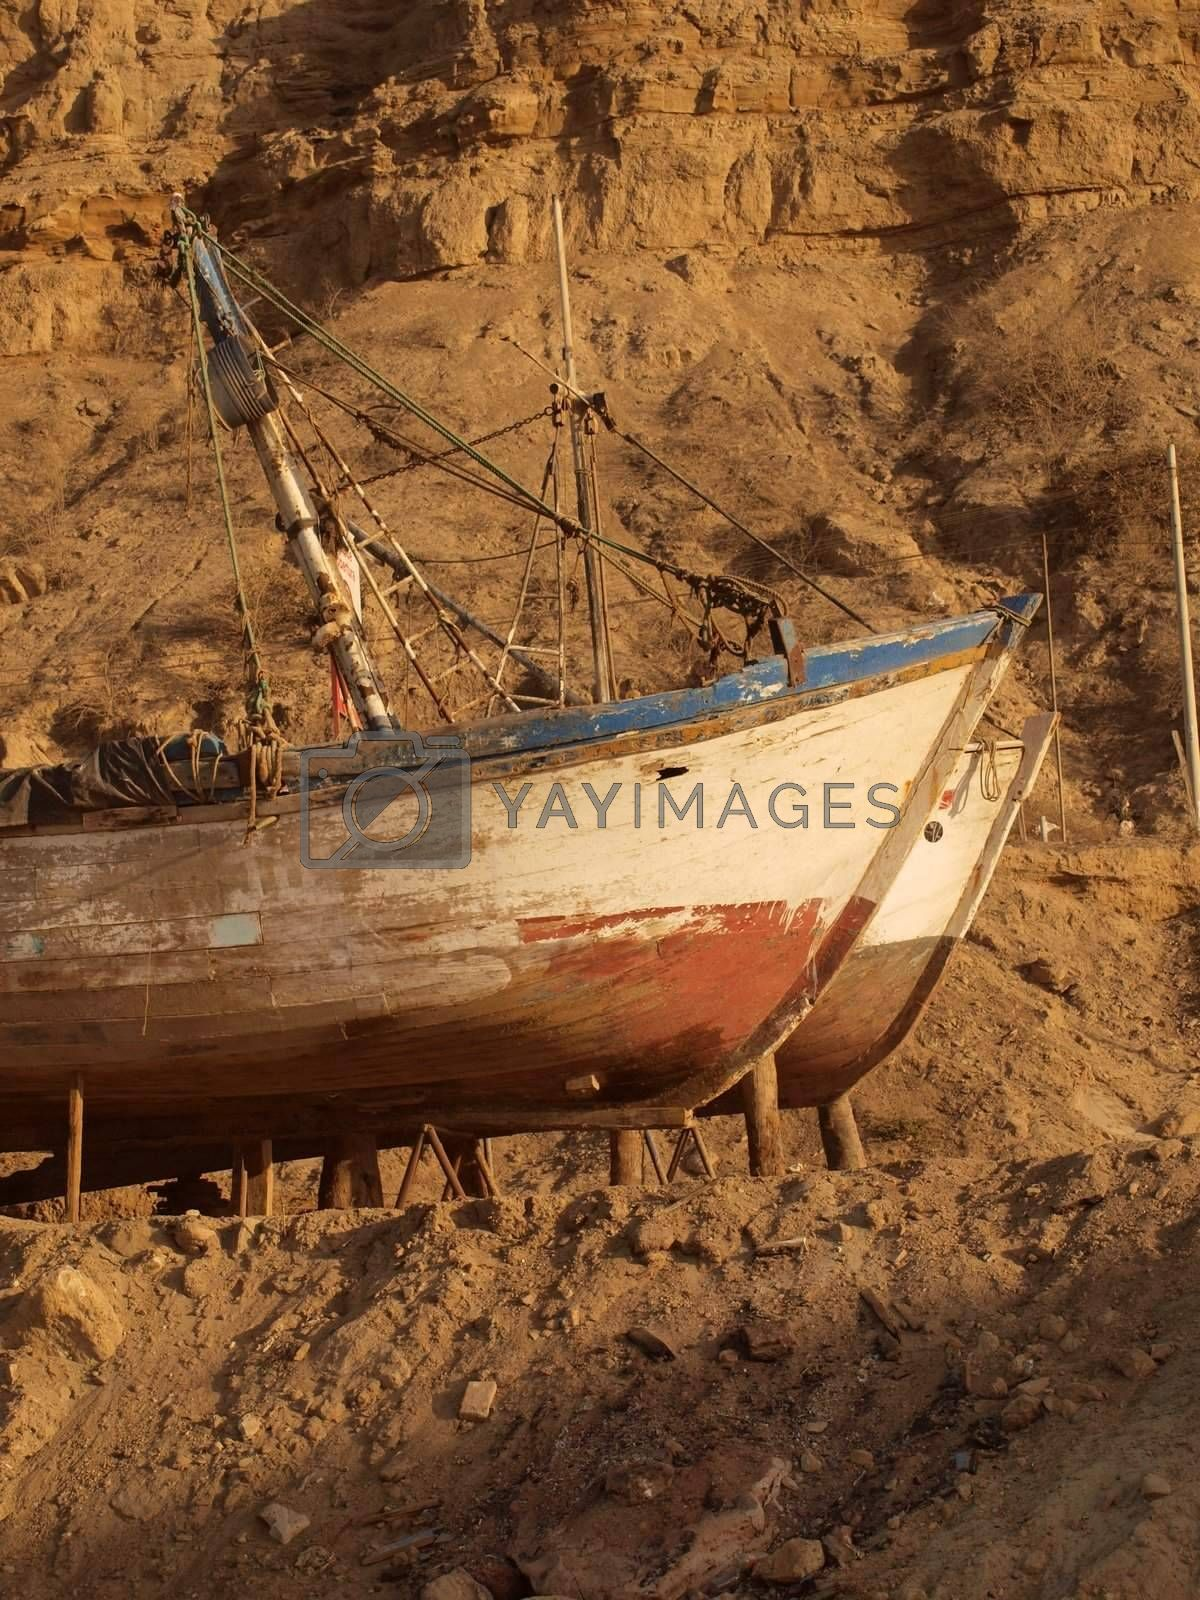 Ships parked on the sandy shore for reparation